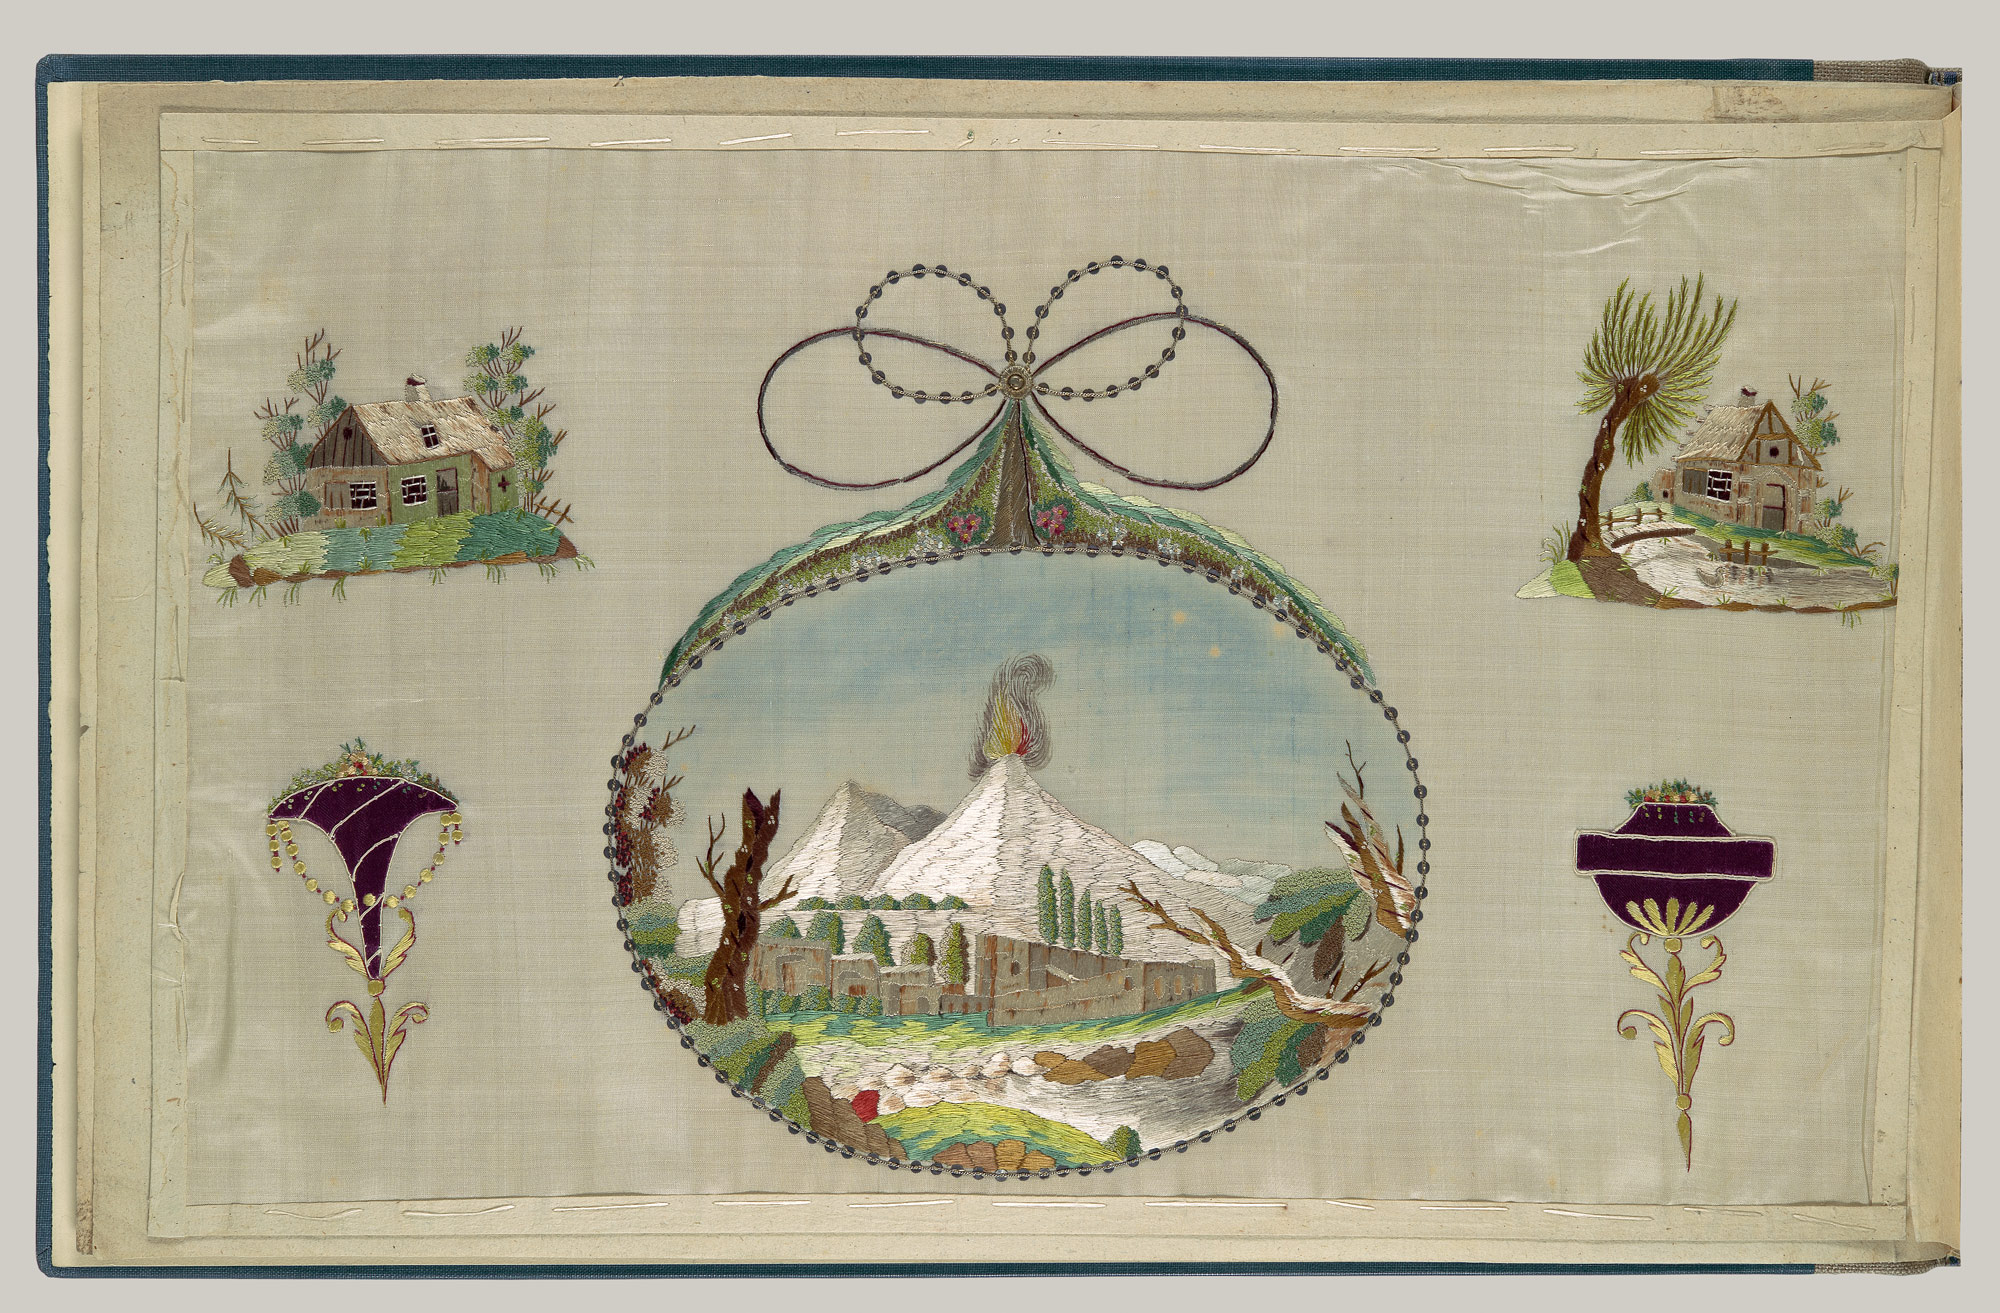 Scandinavian Embroidery Patterns Textile Production In Europe Embroidery 16001800 Essay